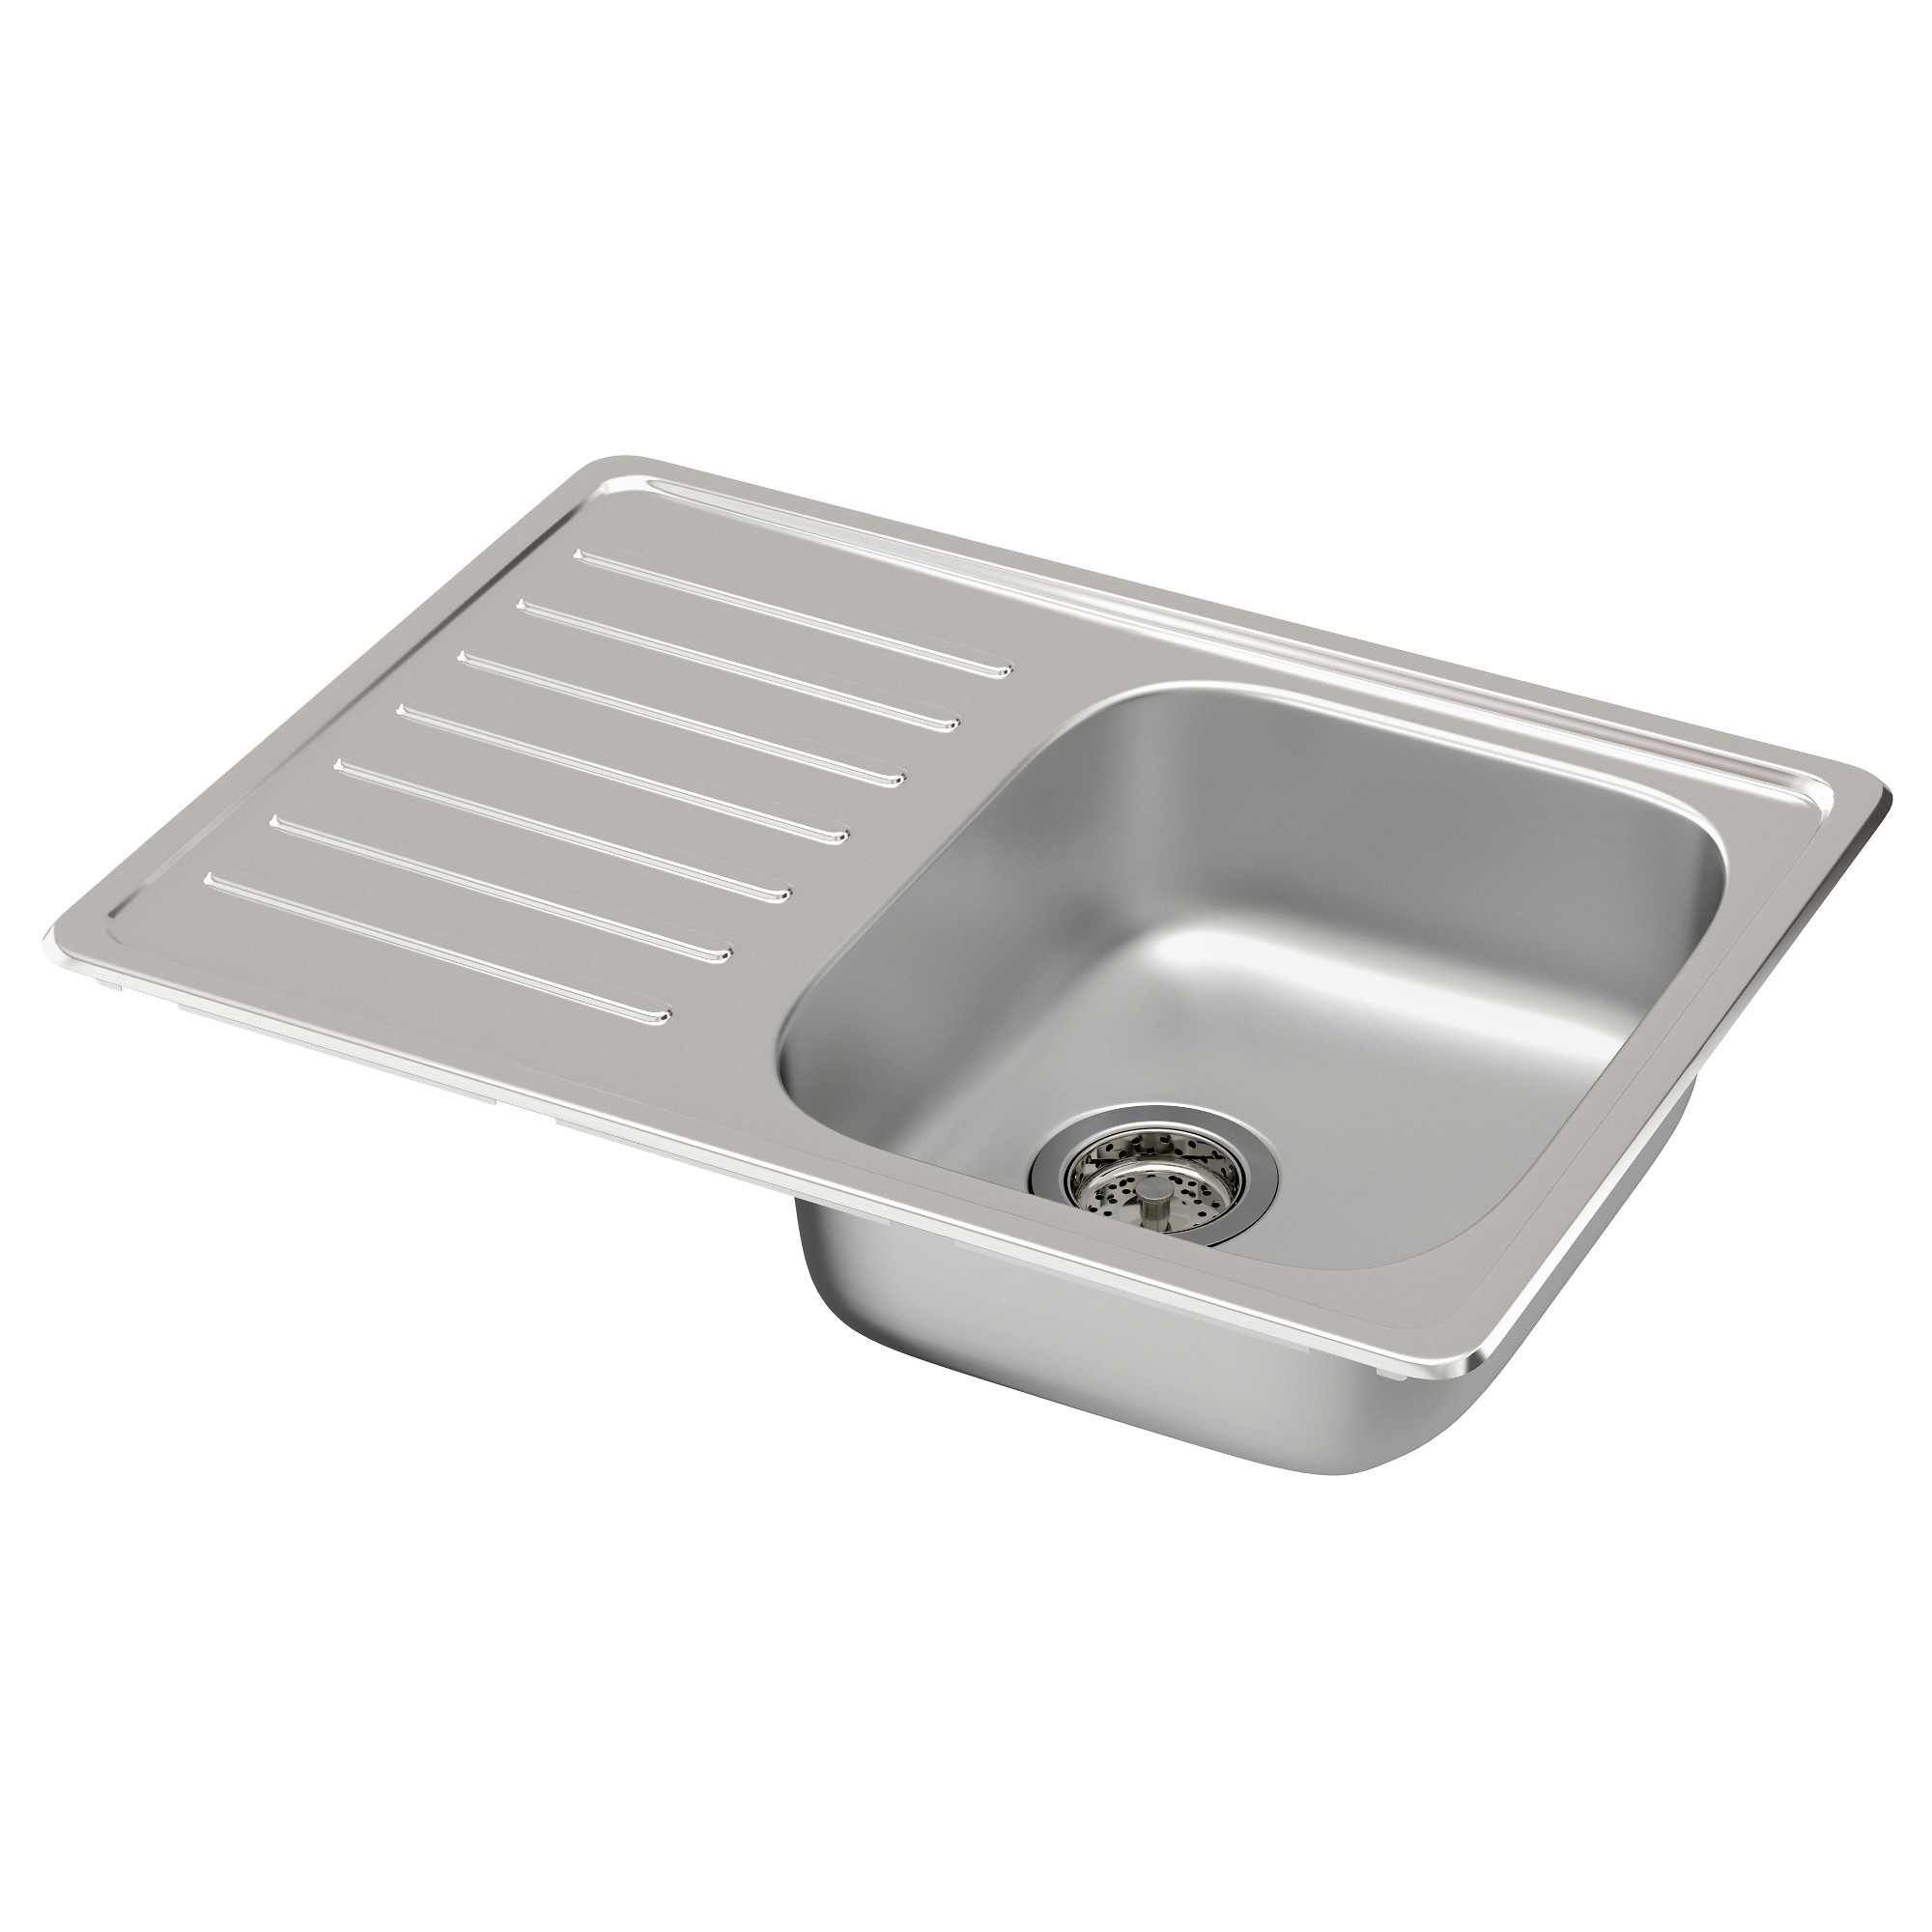 Fyndig Single Bowl Top Mount Sink Stainless Steel Length 27 1 2